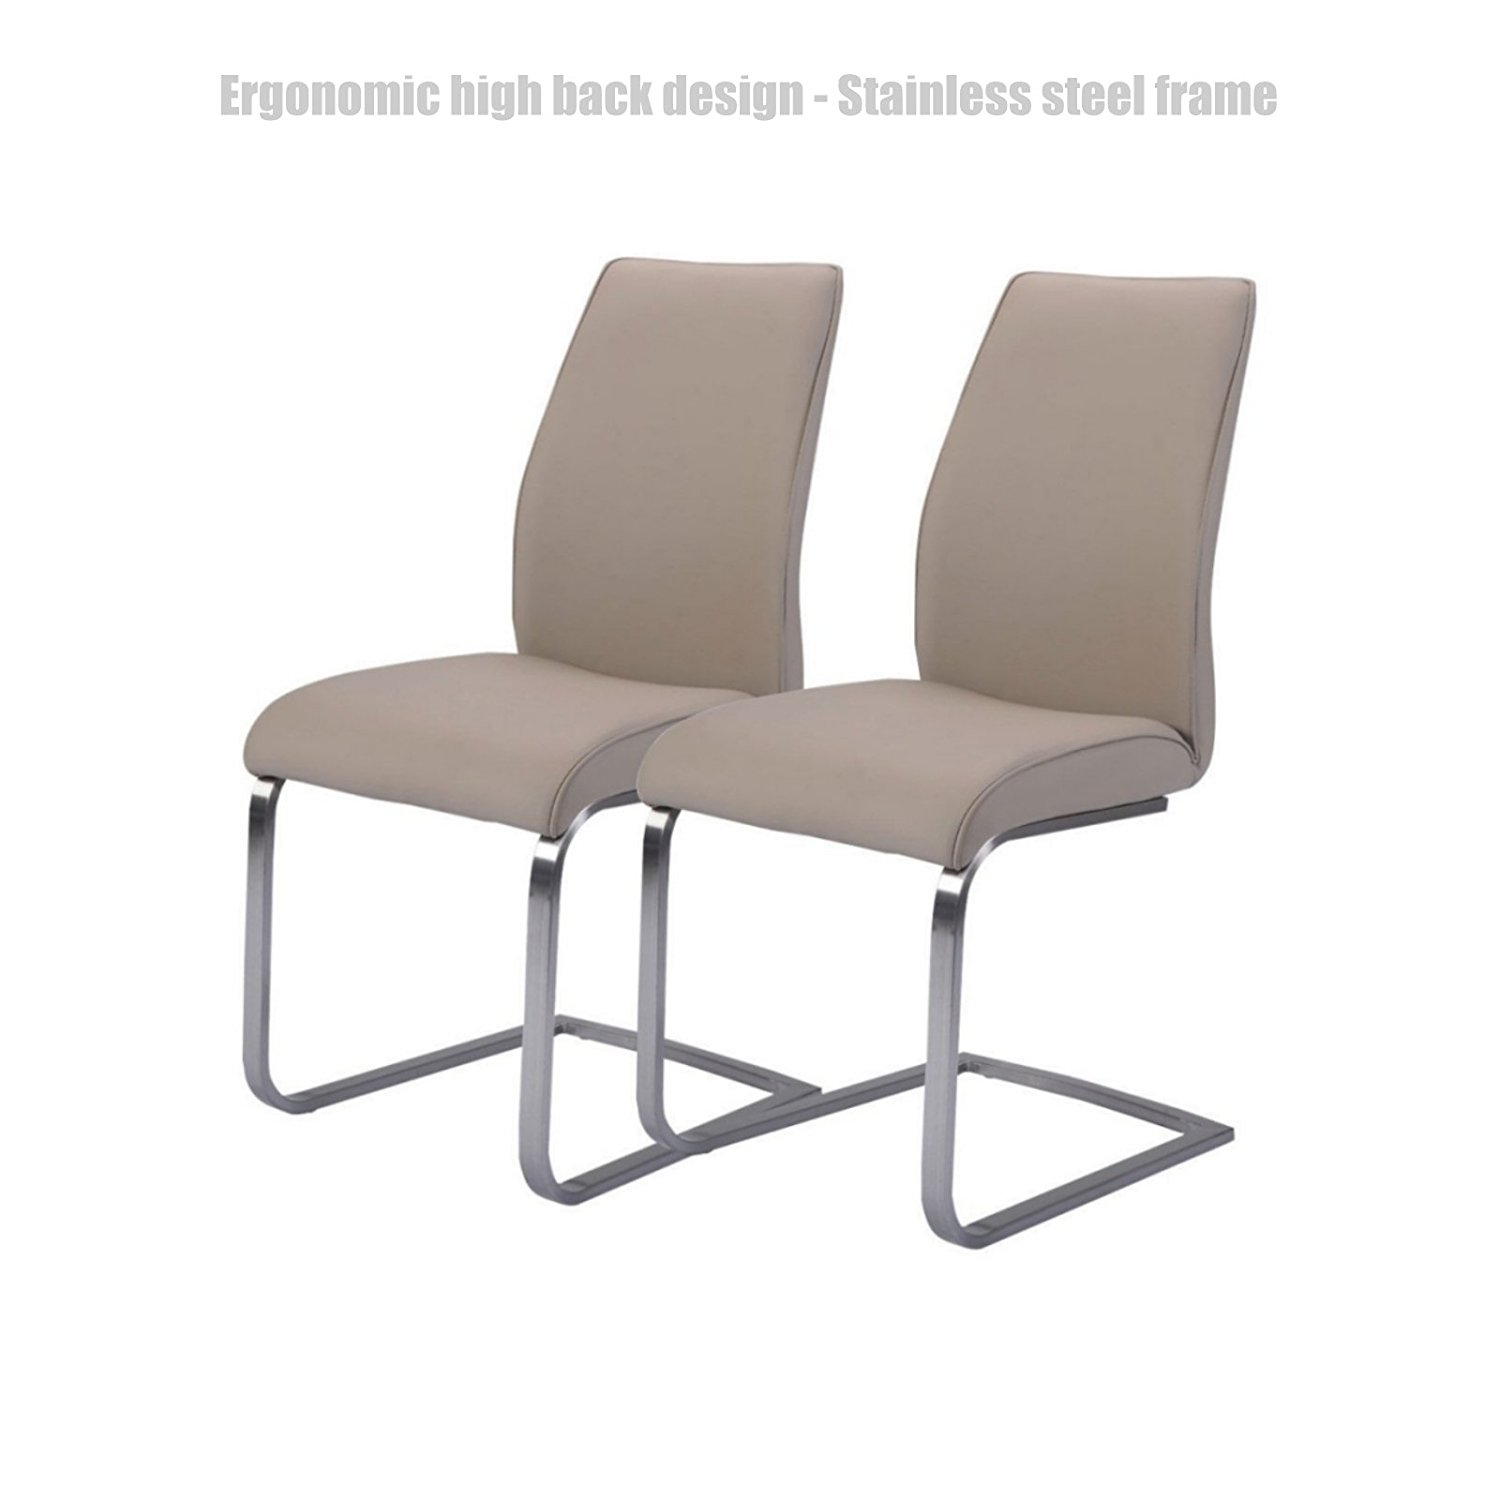 Ergonomic high back design dining chairs leather accent durable stainless steel frame high density padded cushion